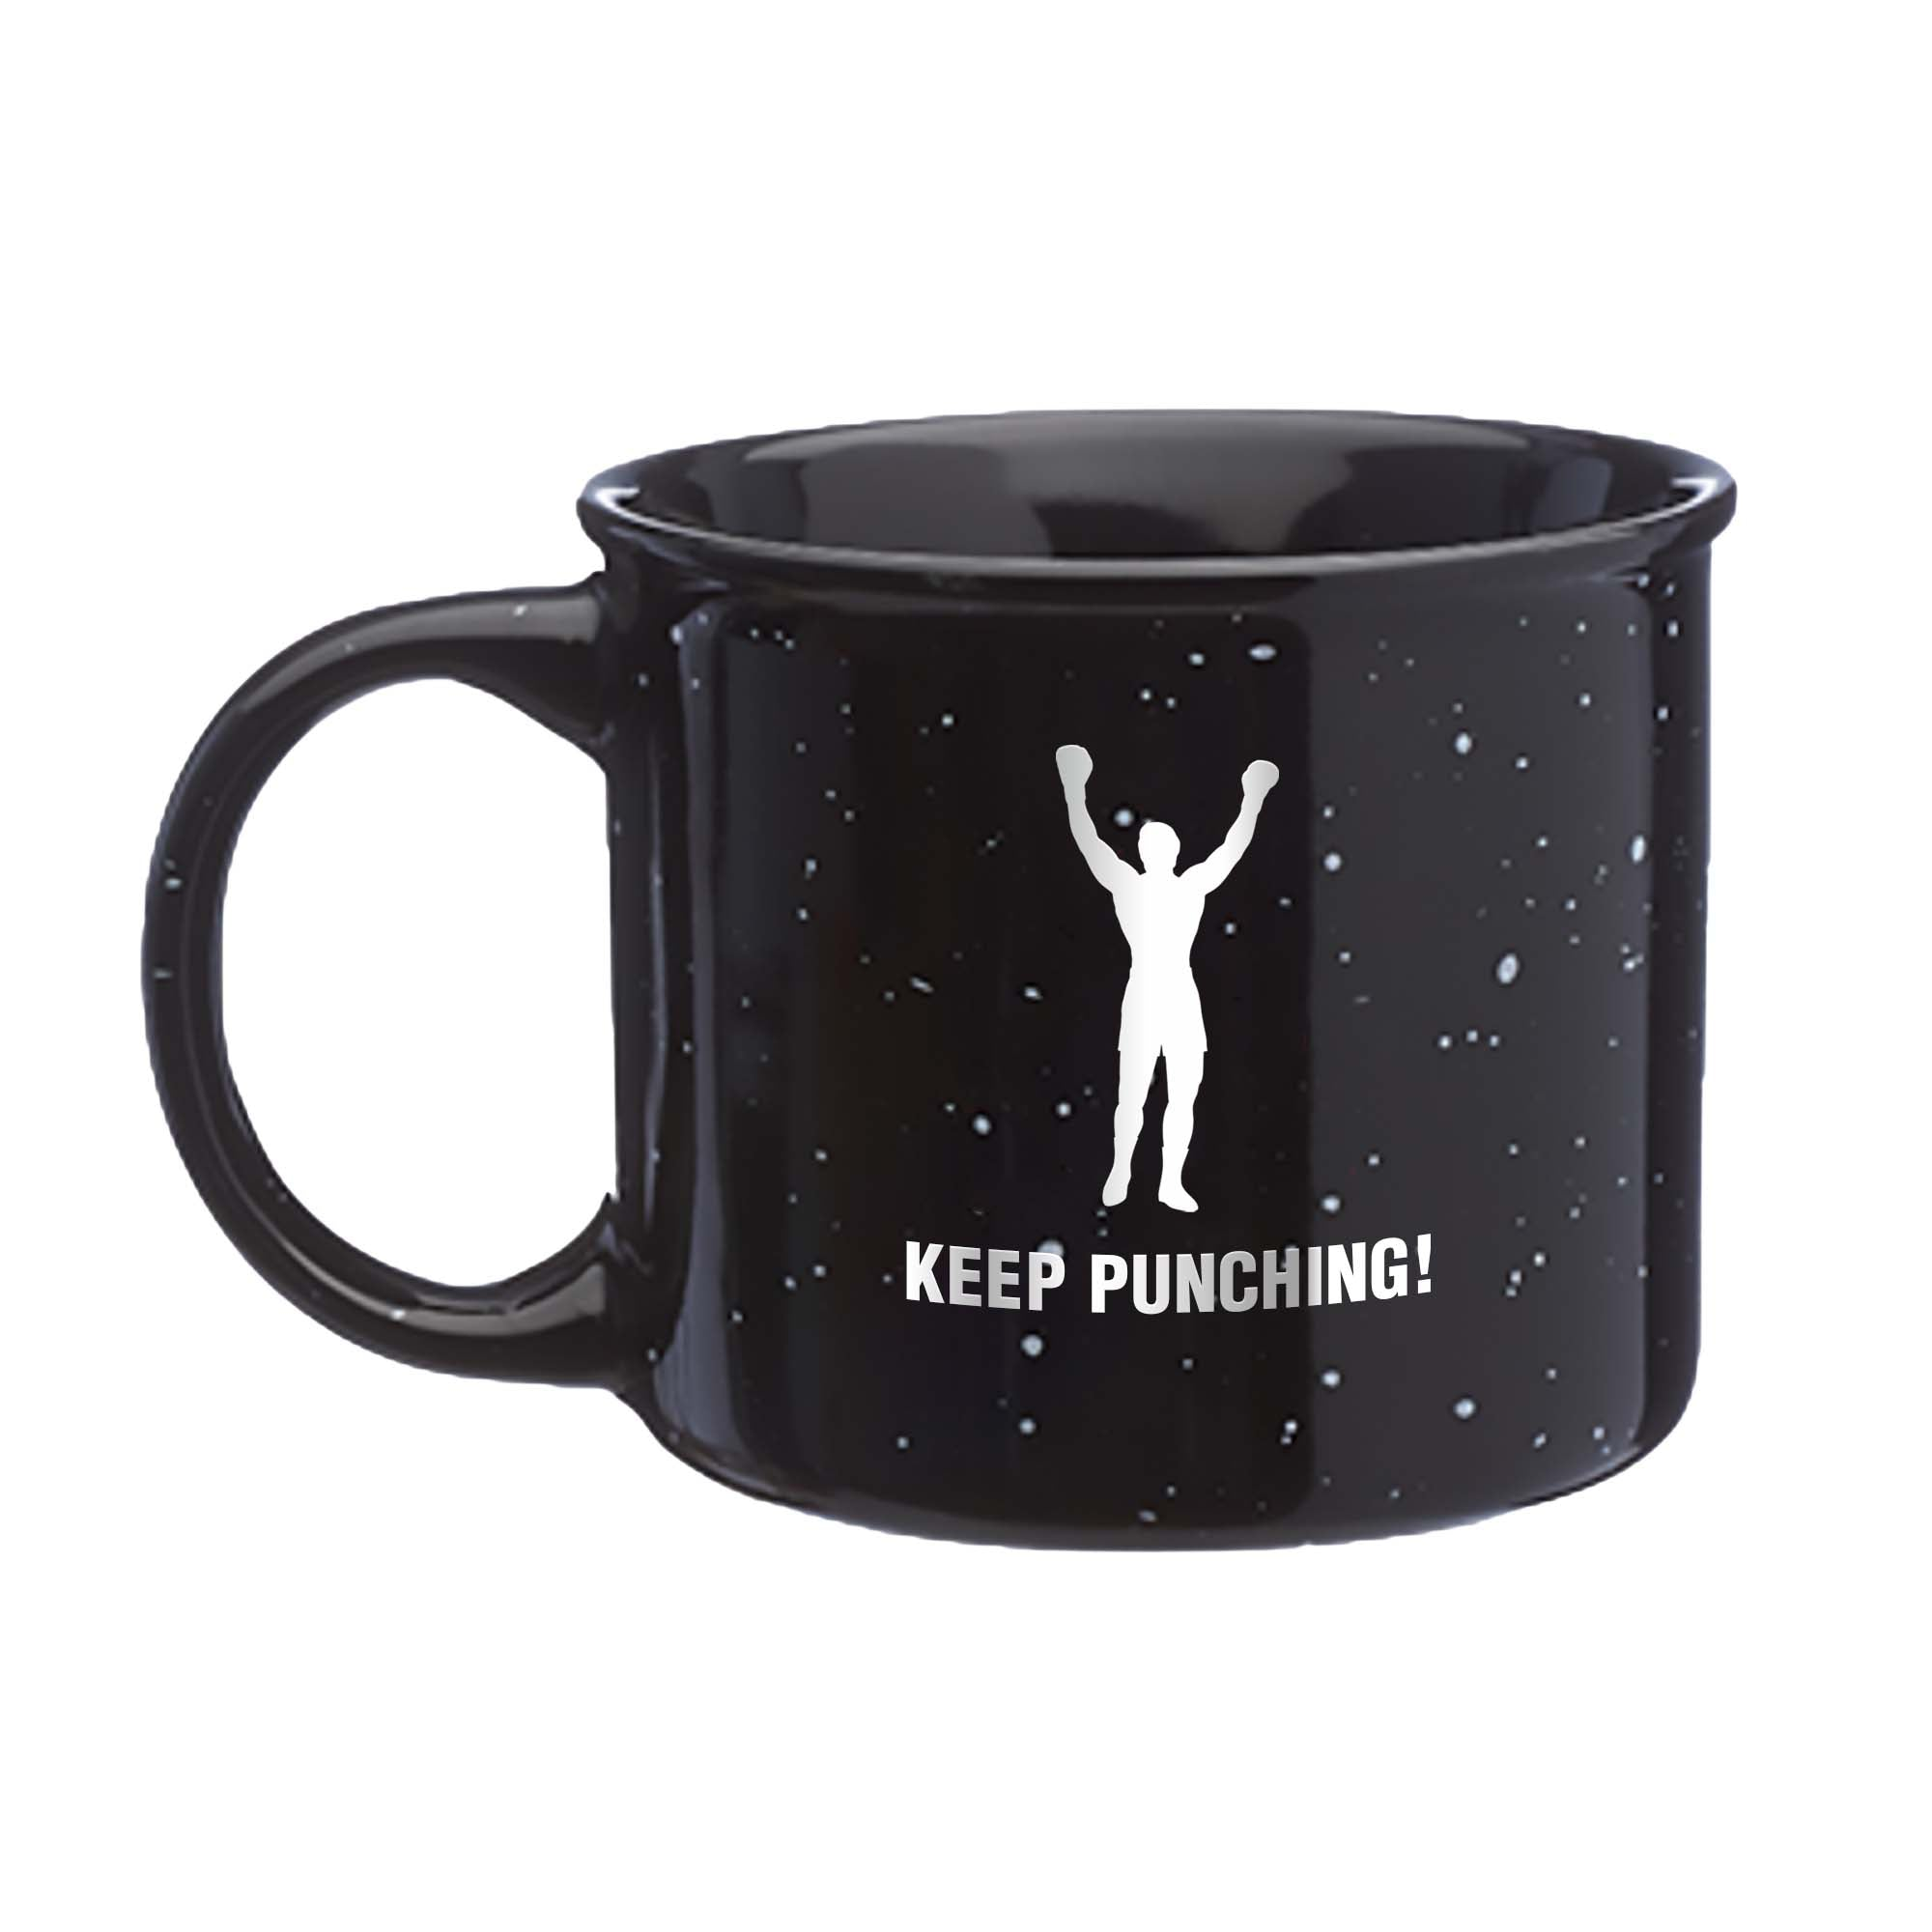 KEEP PUNCHING! Ceramic Coffee Mug